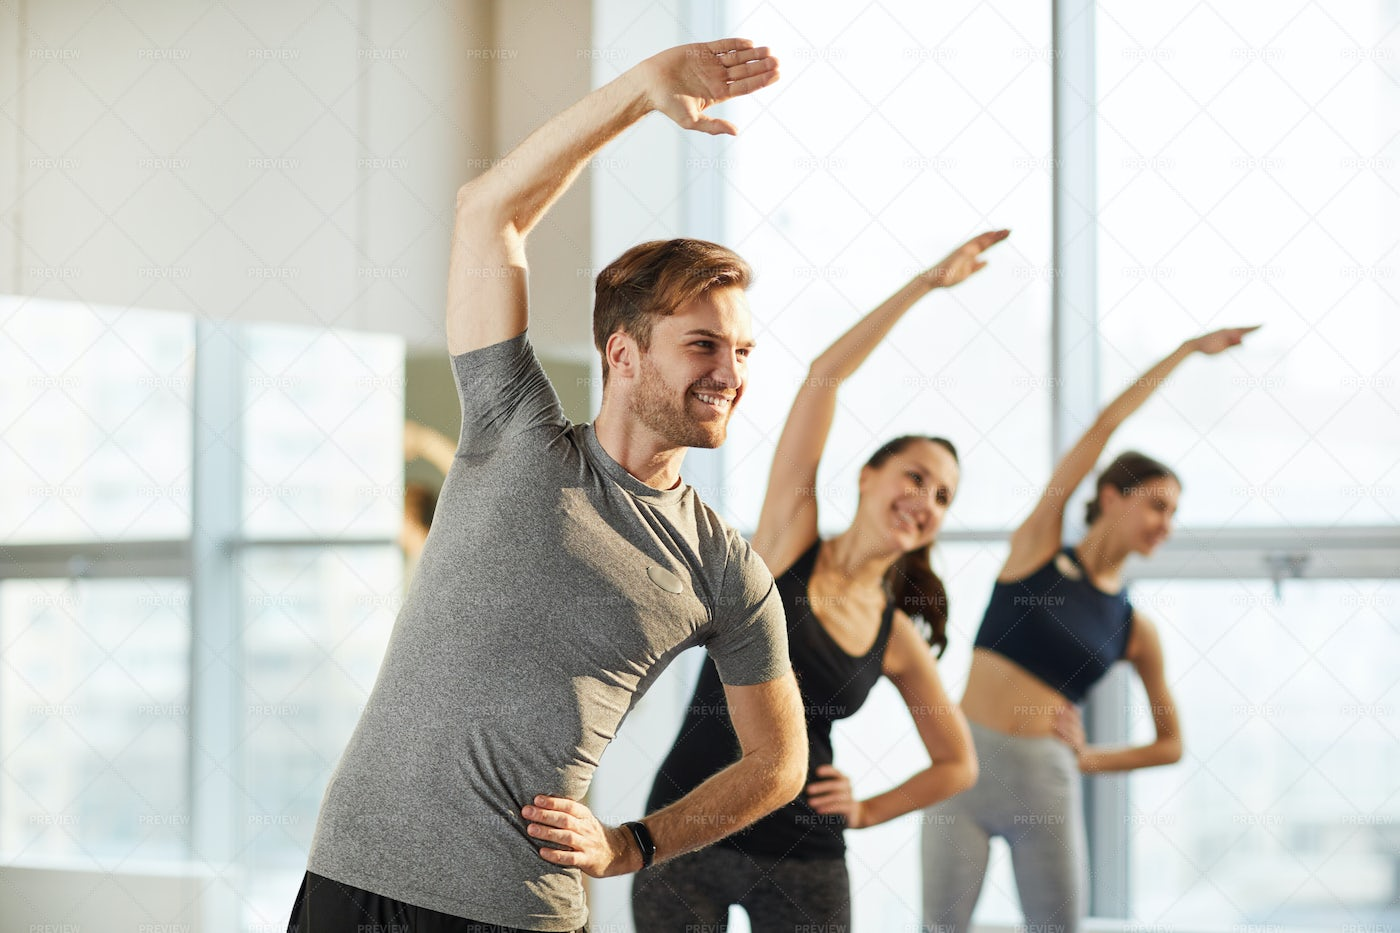 General Yoga Class For Men And...: Stock Photos